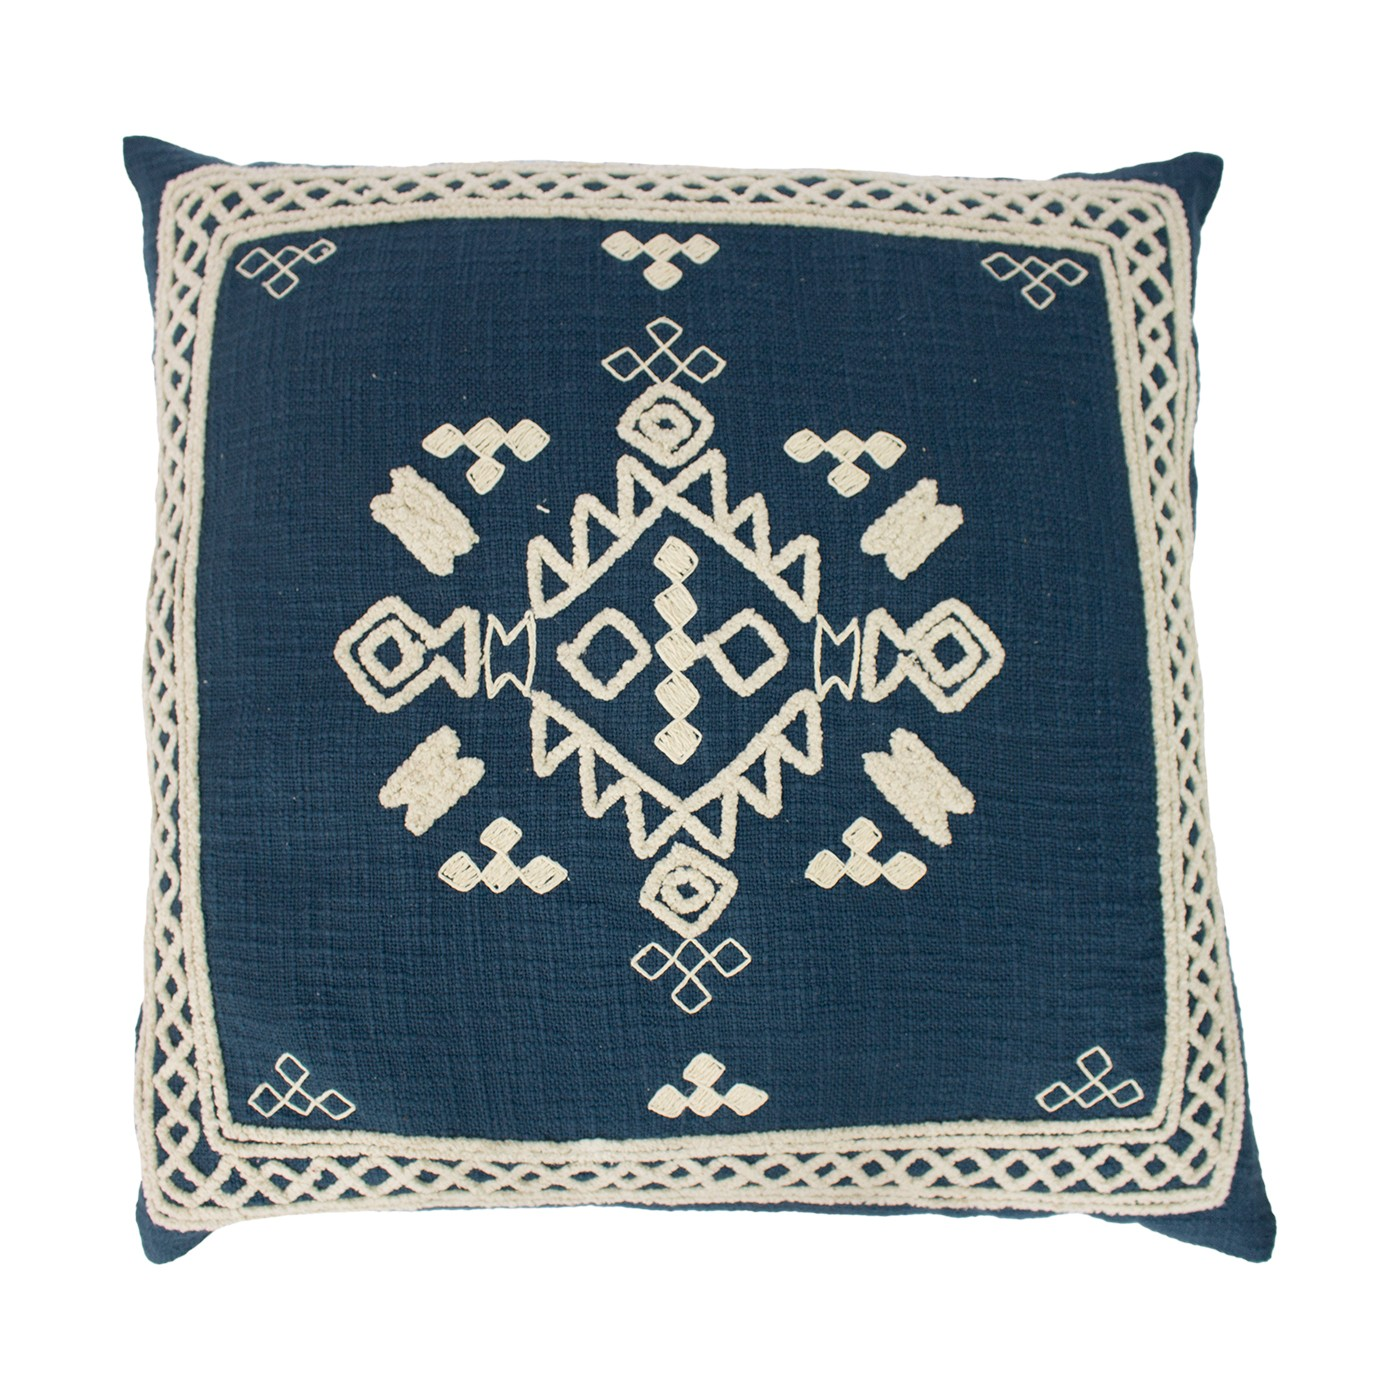 Tohoe Cushion, Teal by Paoletti